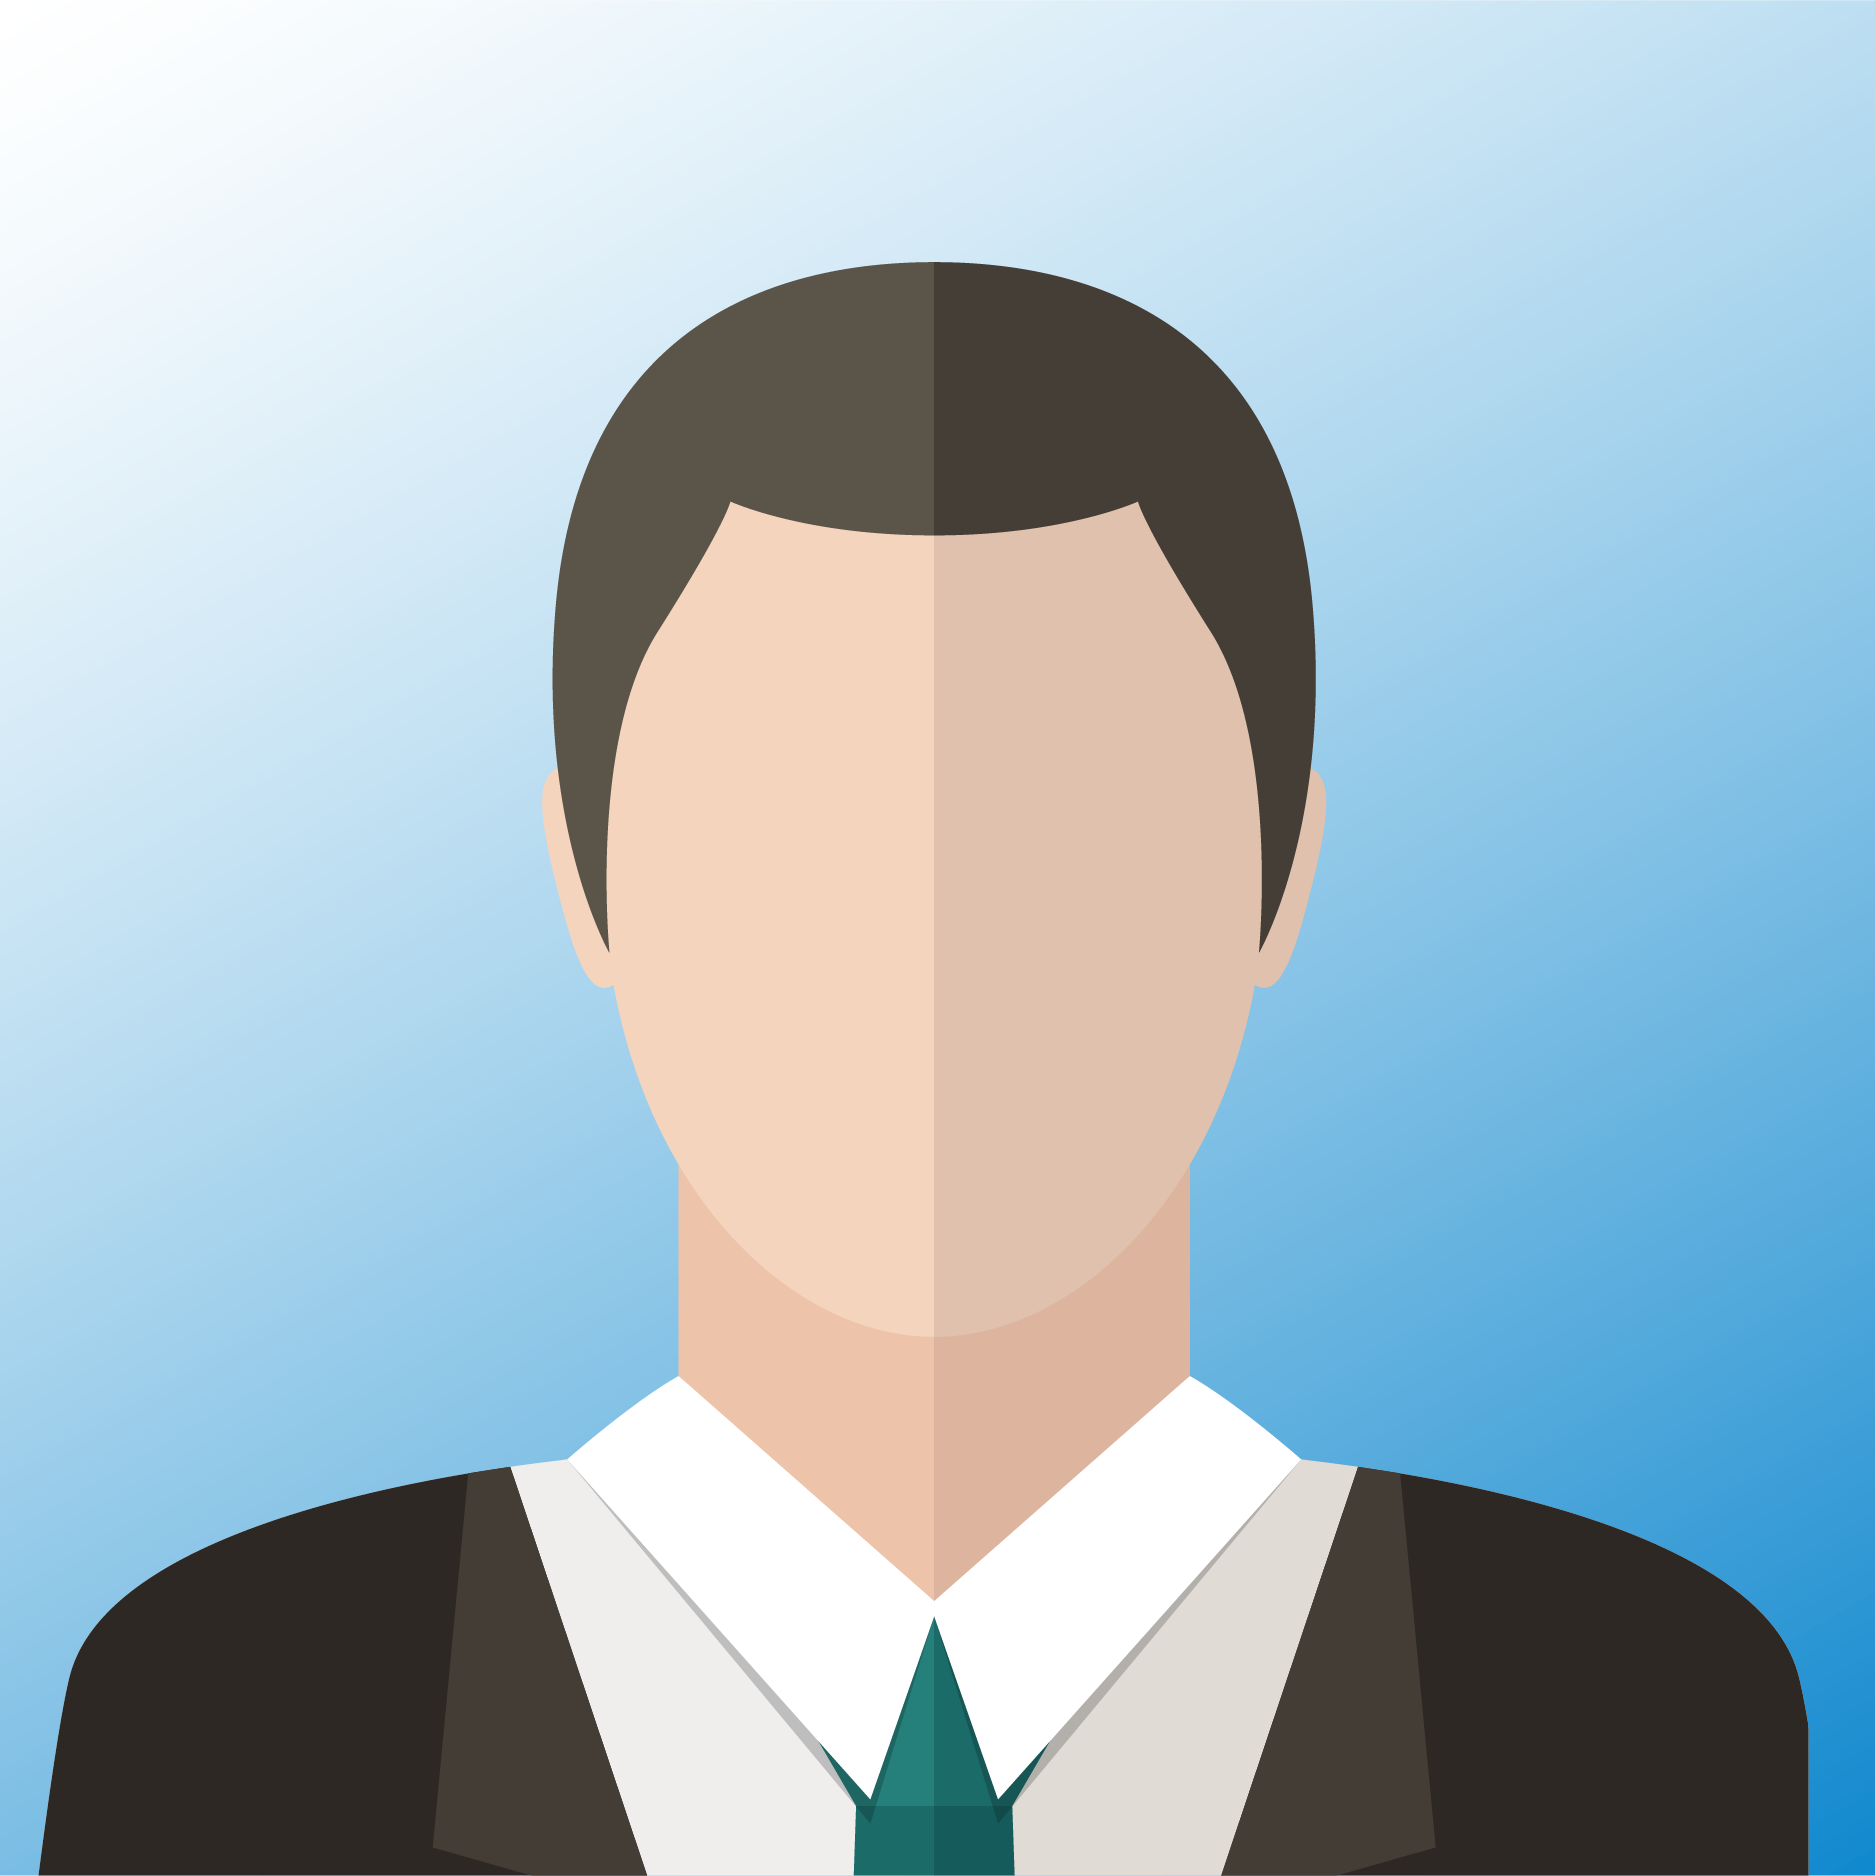 vector of man with black hair